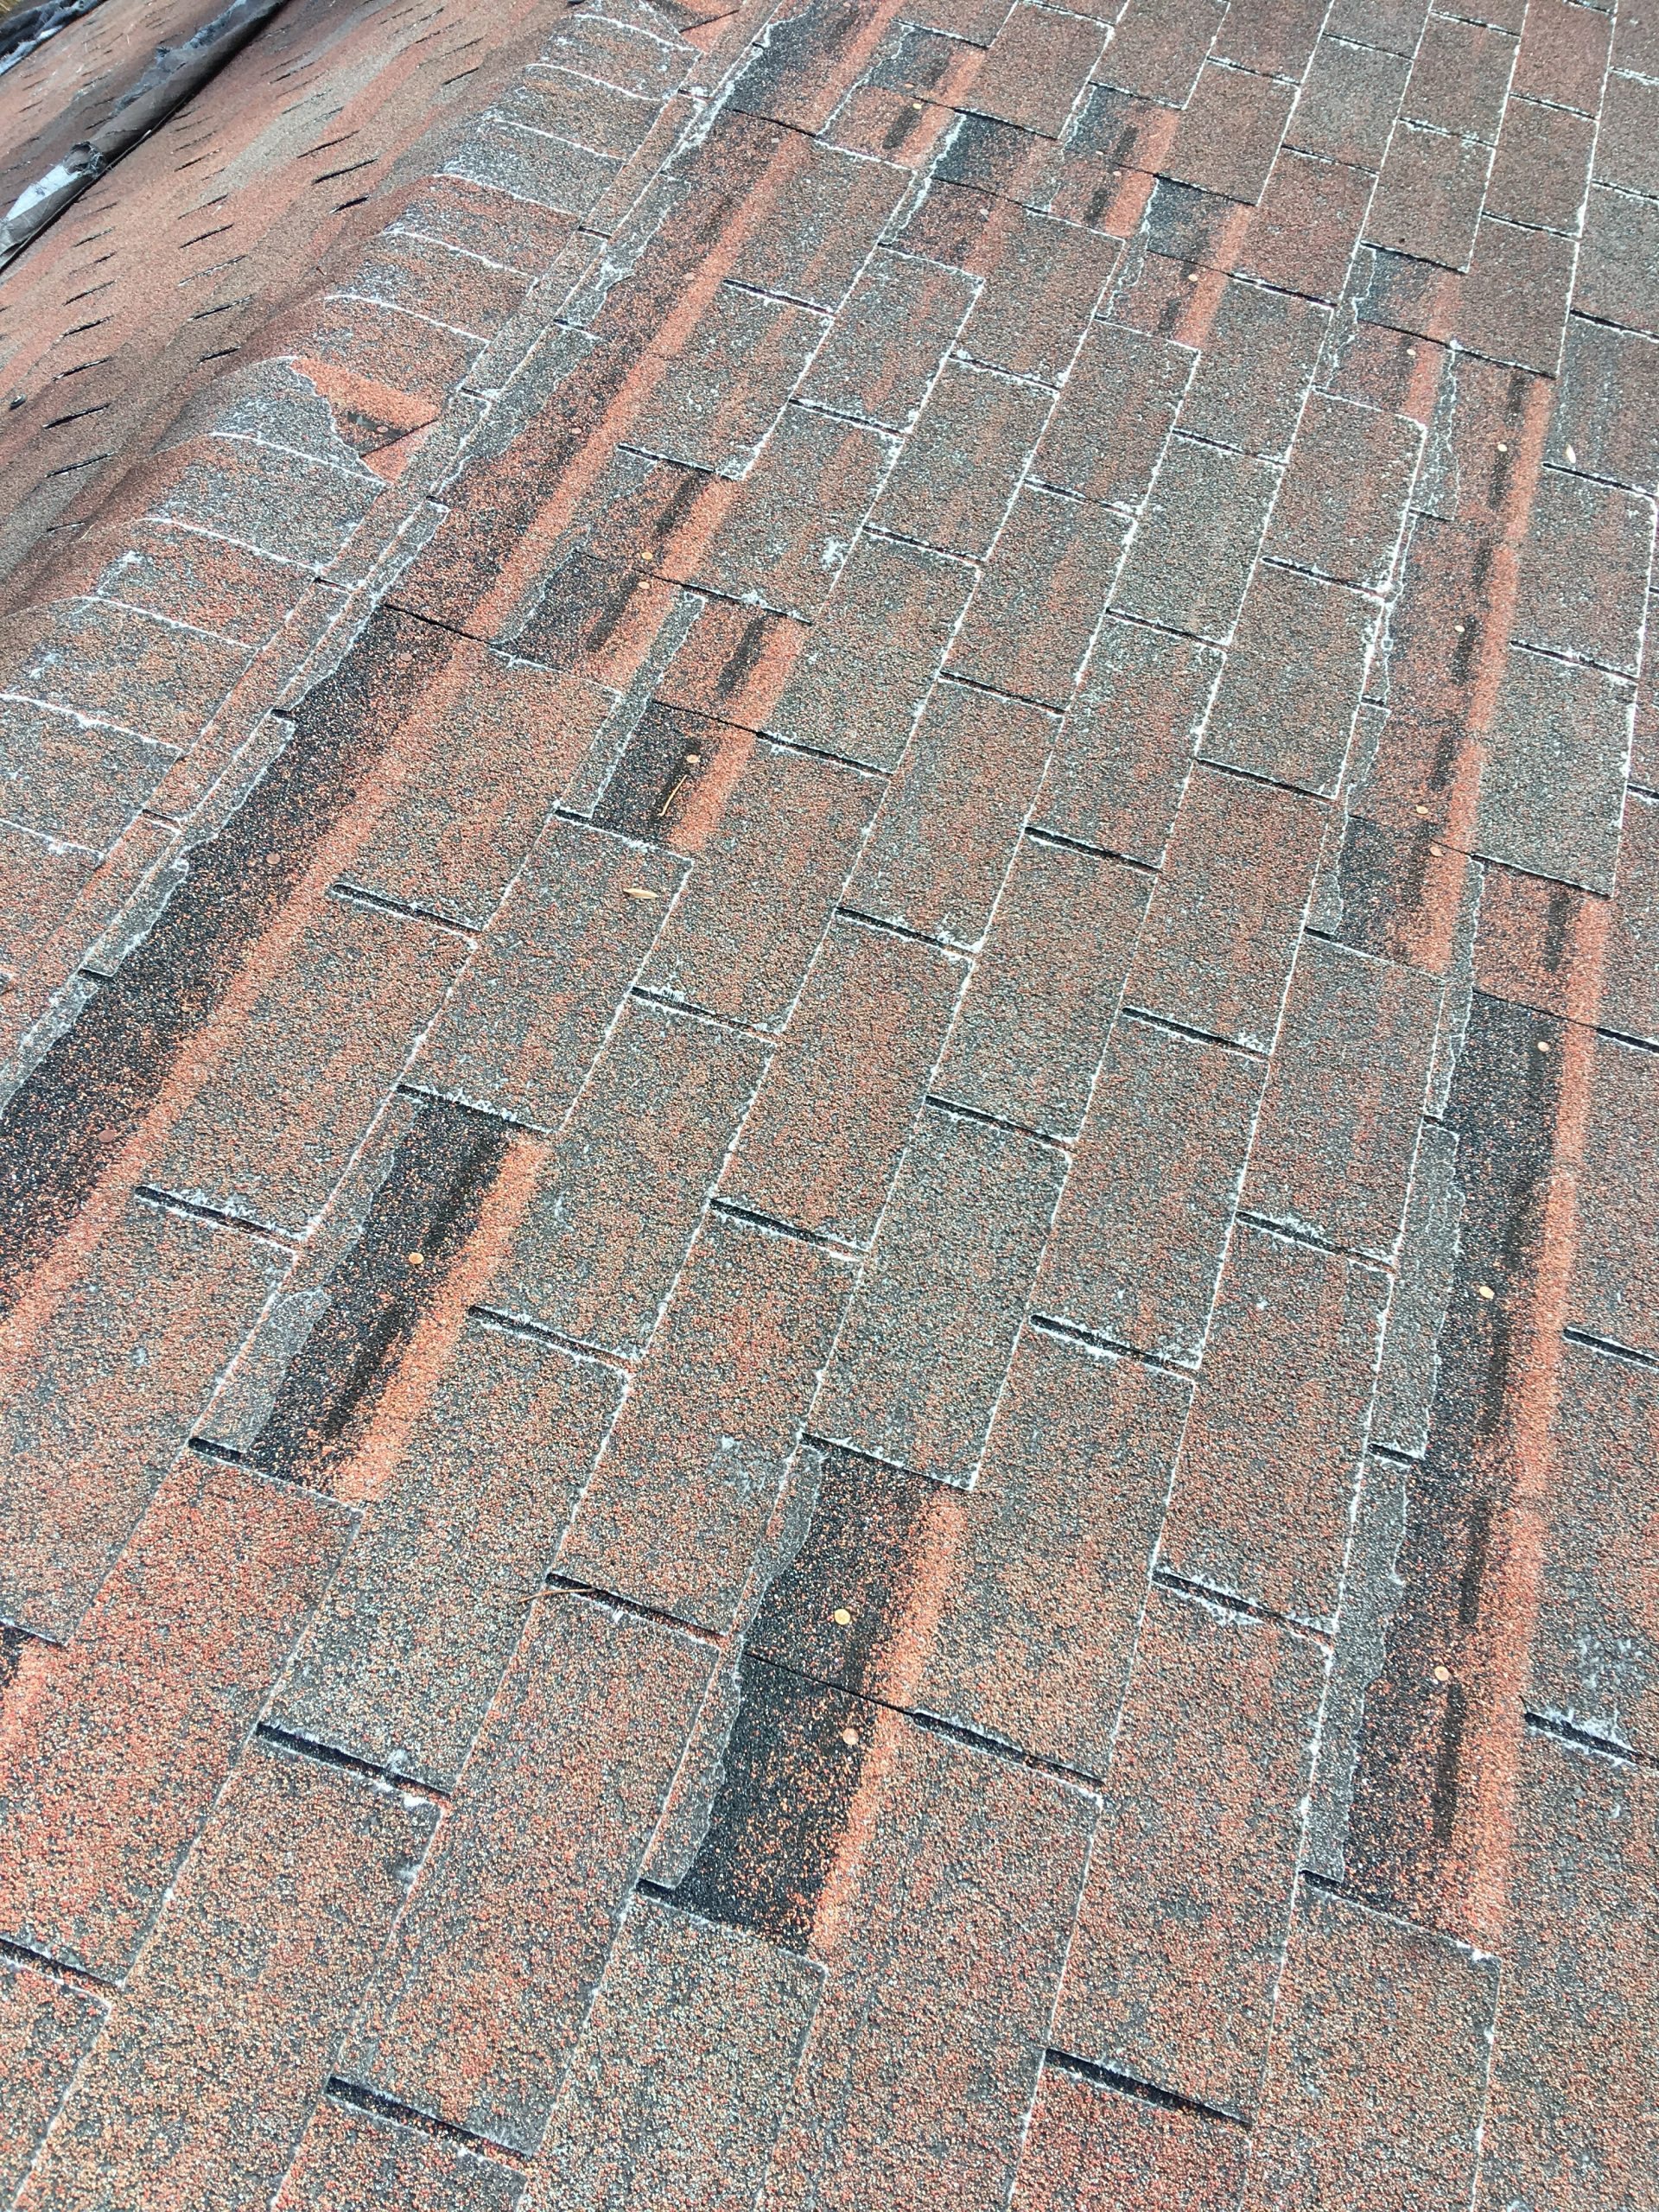 This is an image of shingles at the ridge of the roof.